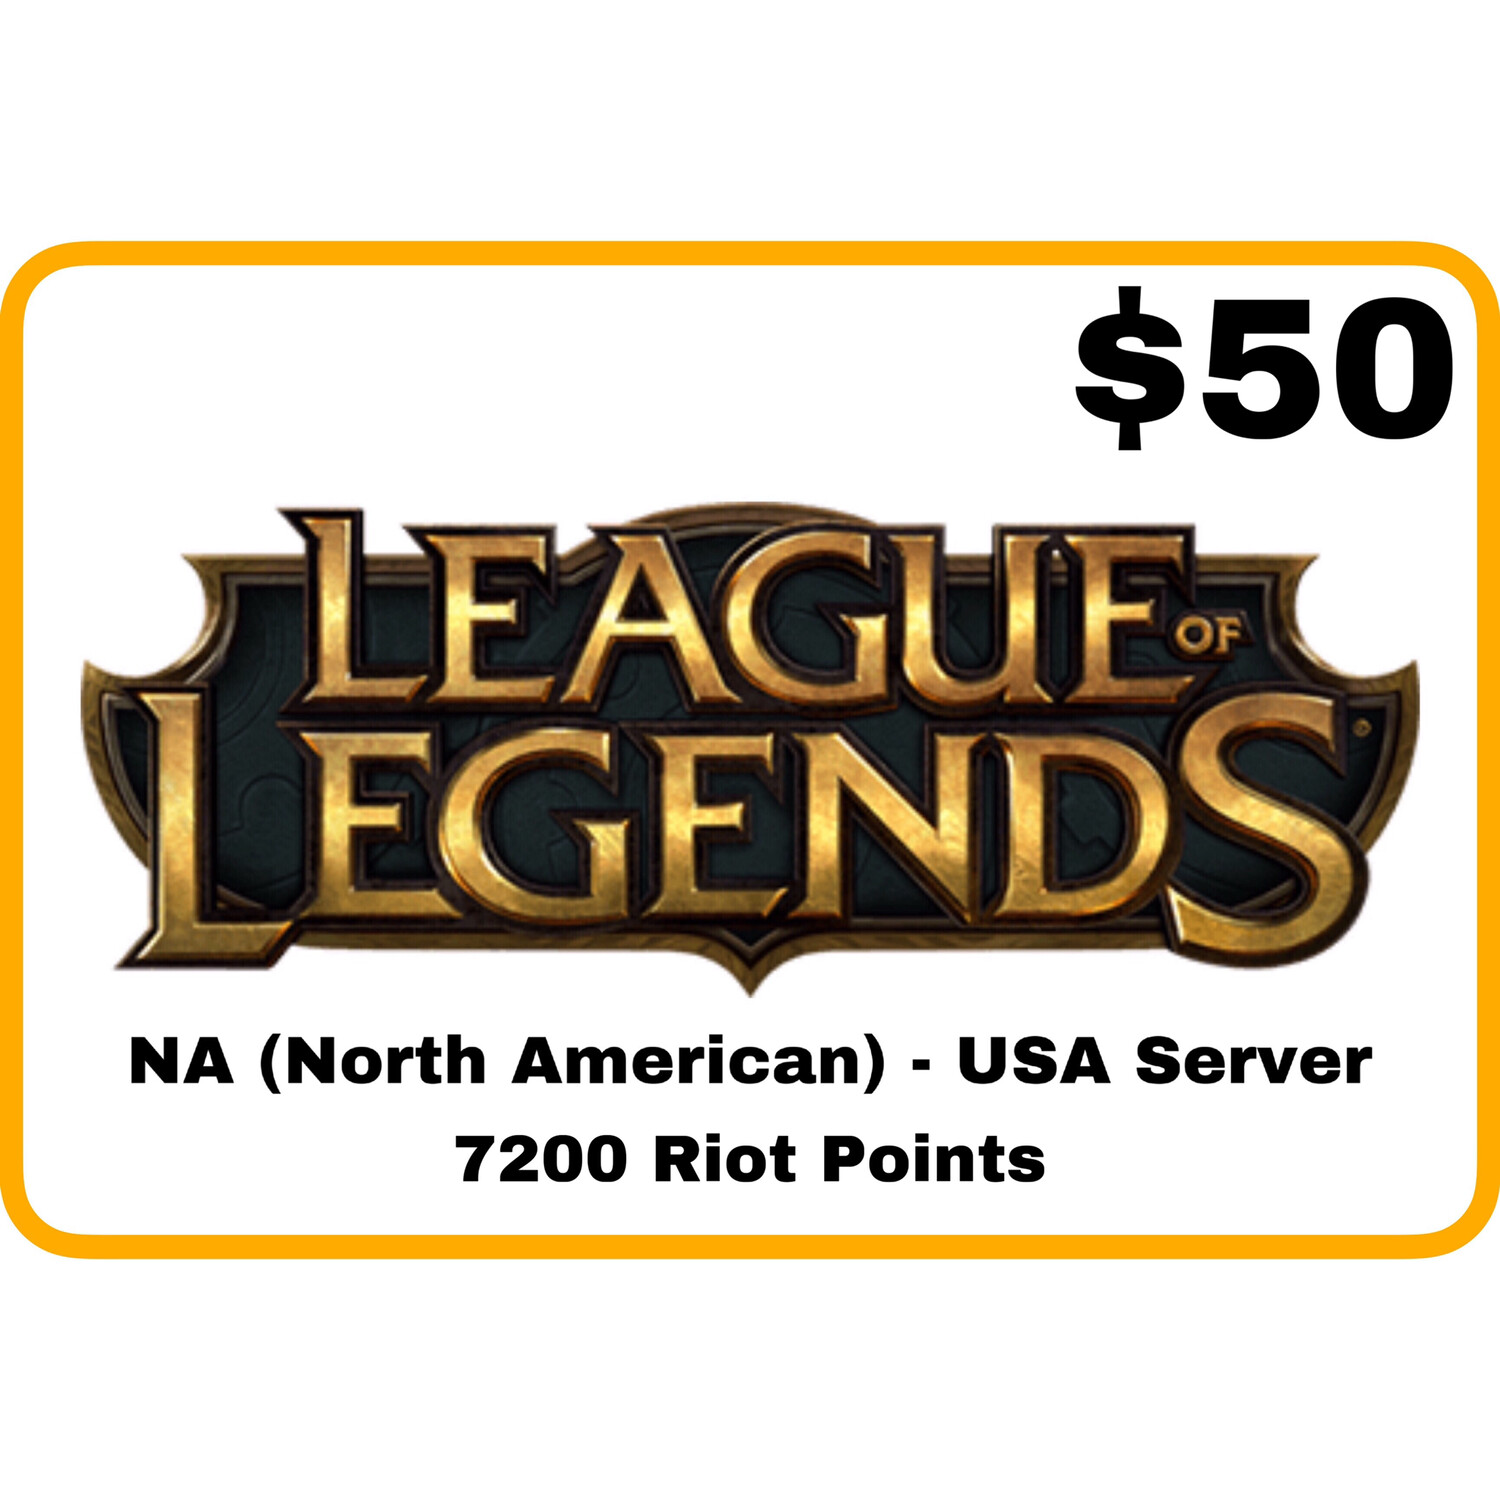 League of Legends $50 NA Server (USA) 7200 Riot Points